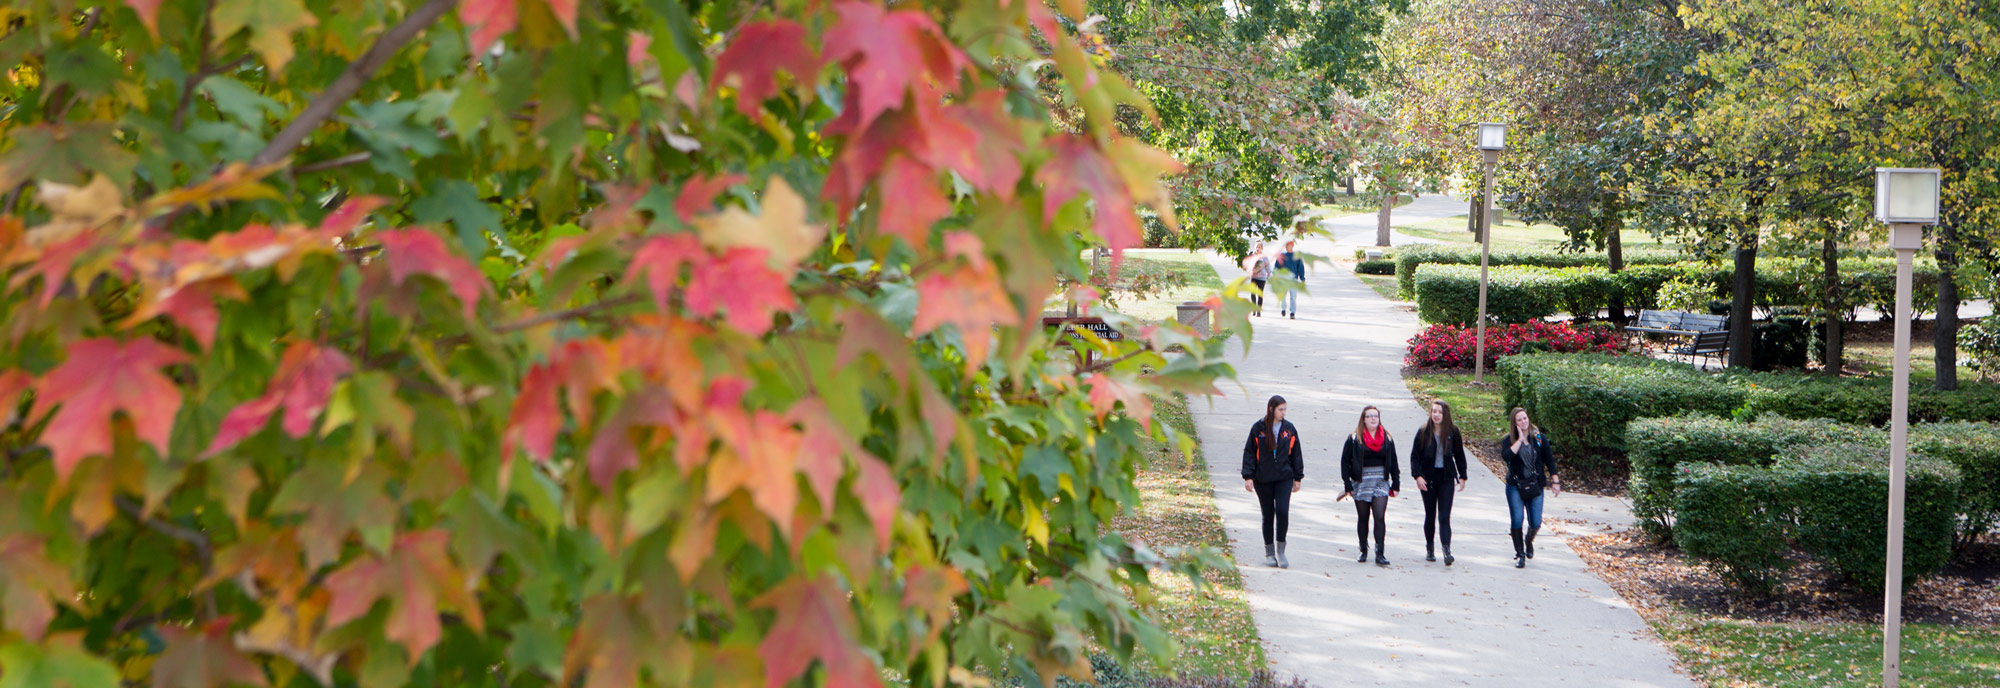 Students walking around campus in the fall.